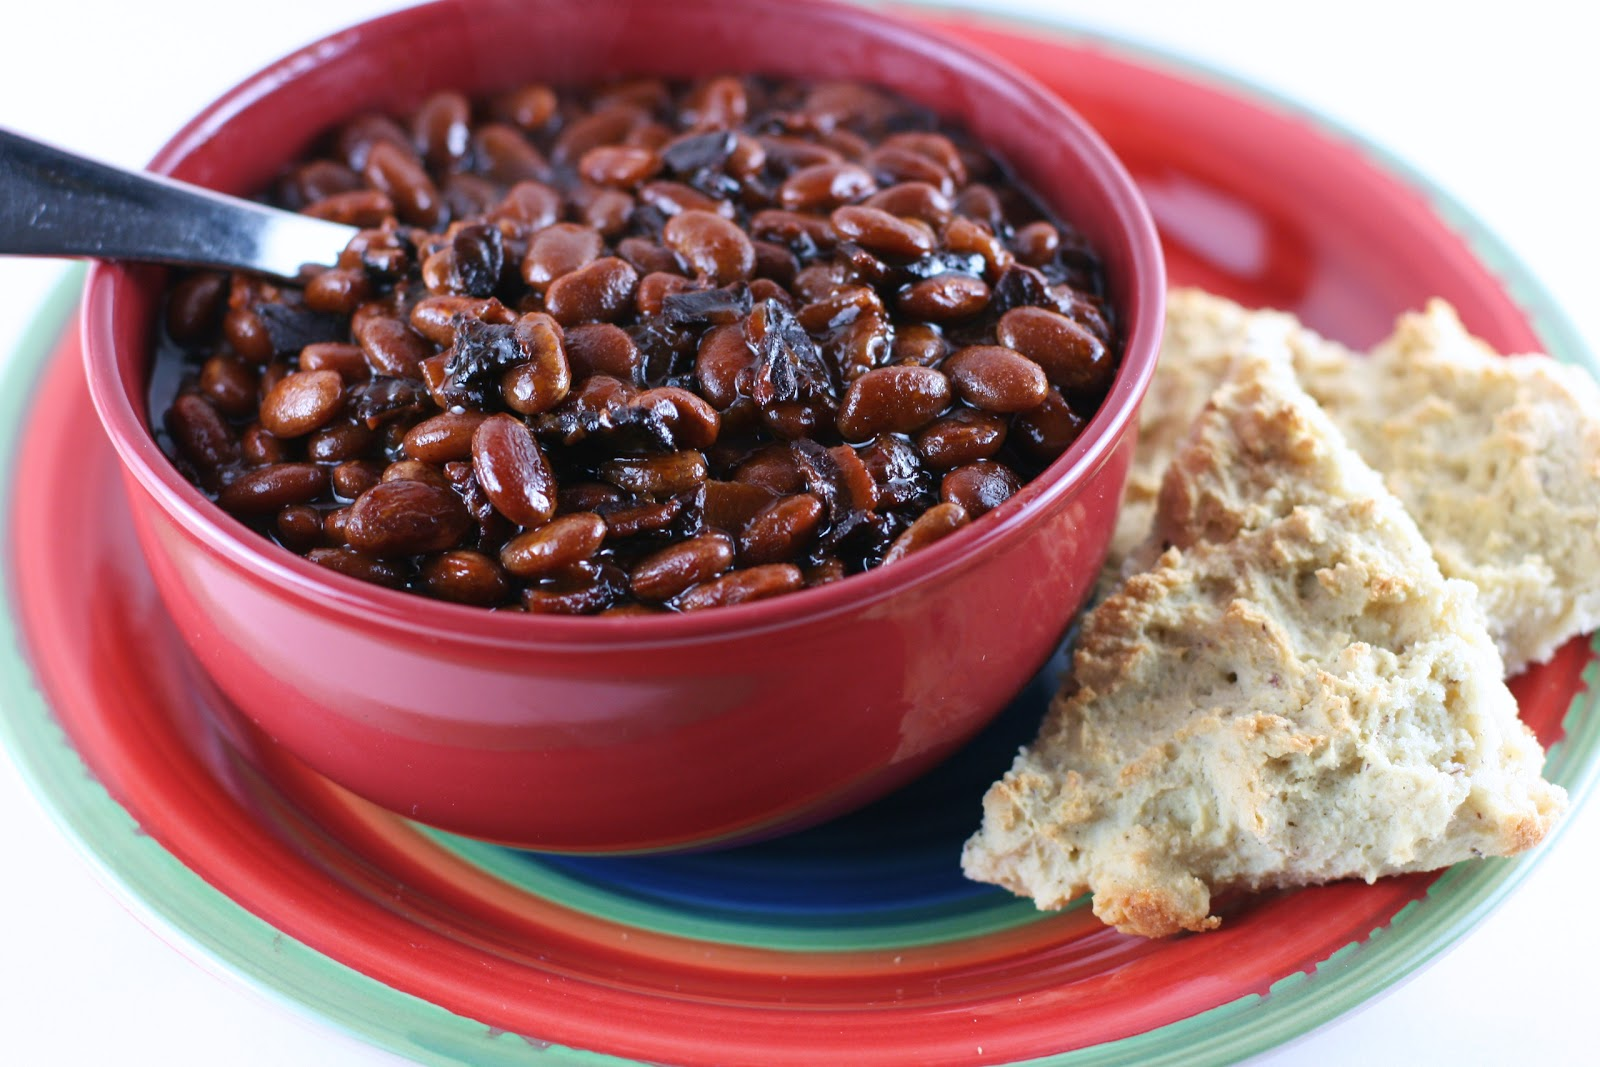 Slow Cooker Bourbon Baked Beans - A Year of Slow Cooking